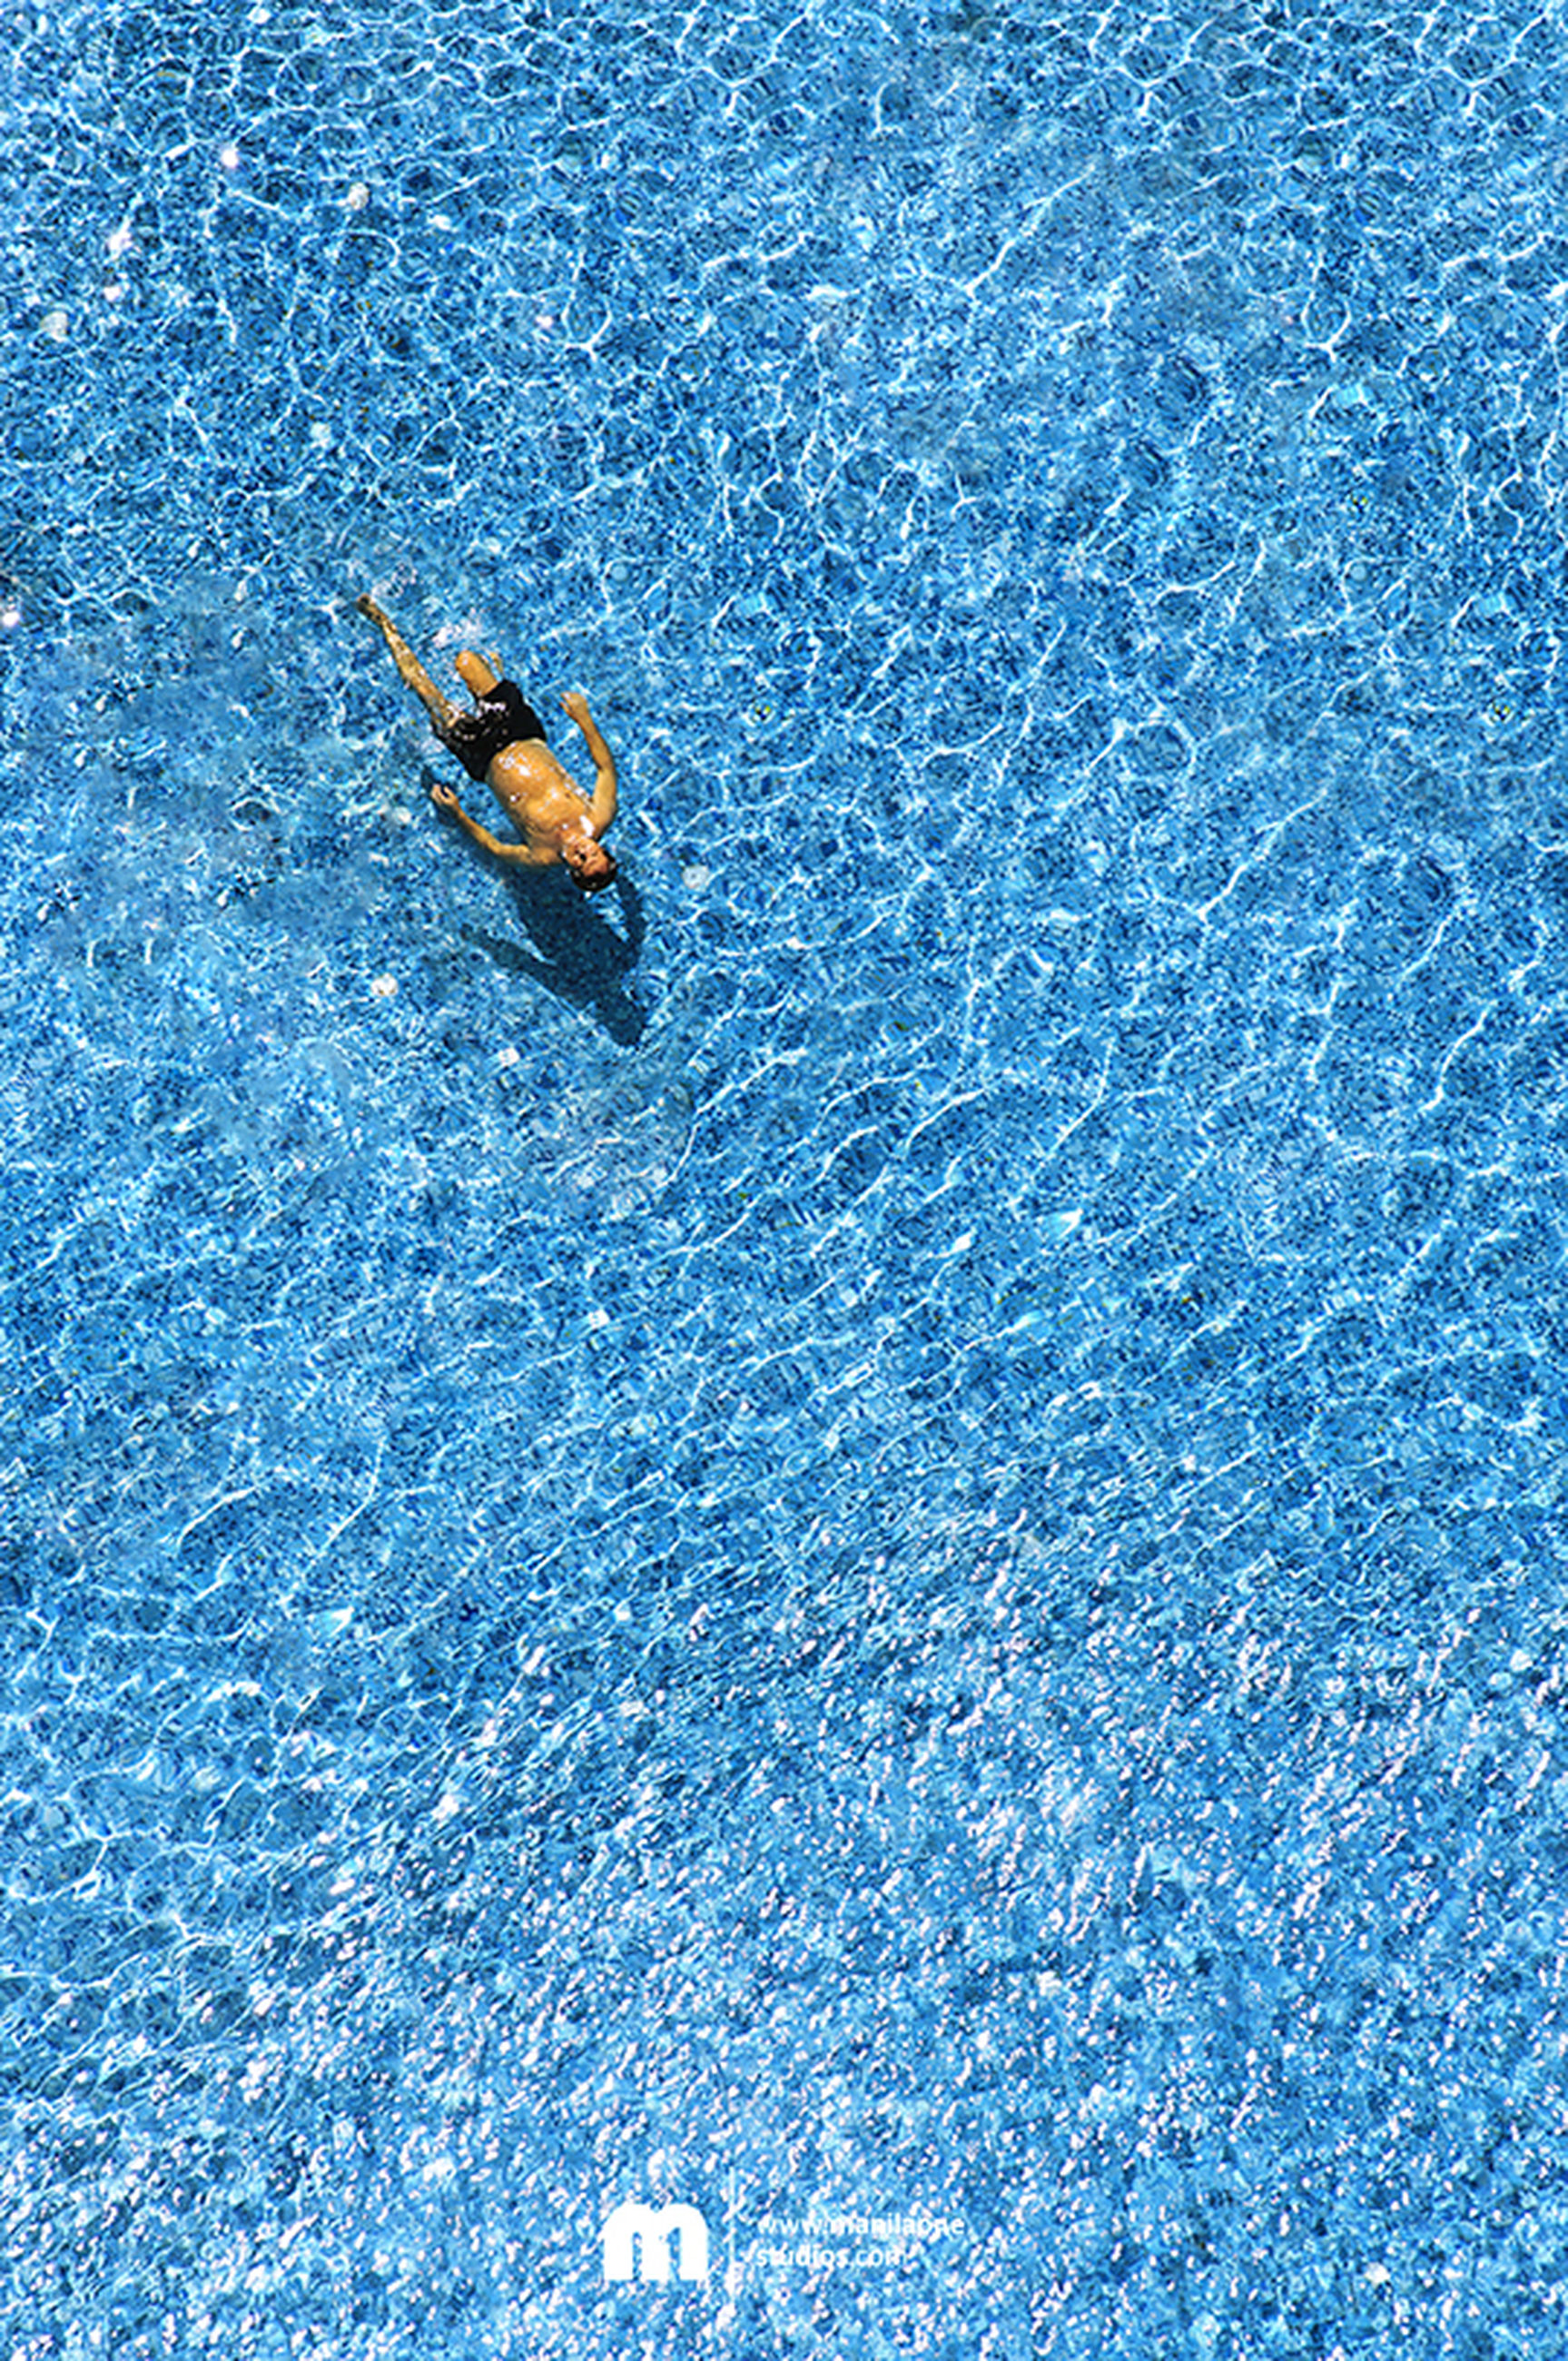 water, high angle view, blue, waterfront, rippled, full frame, swimming pool, floating on water, swimming, backgrounds, reflection, day, nature, outdoors, directly above, no people, lake, close-up, turquoise colored, wet